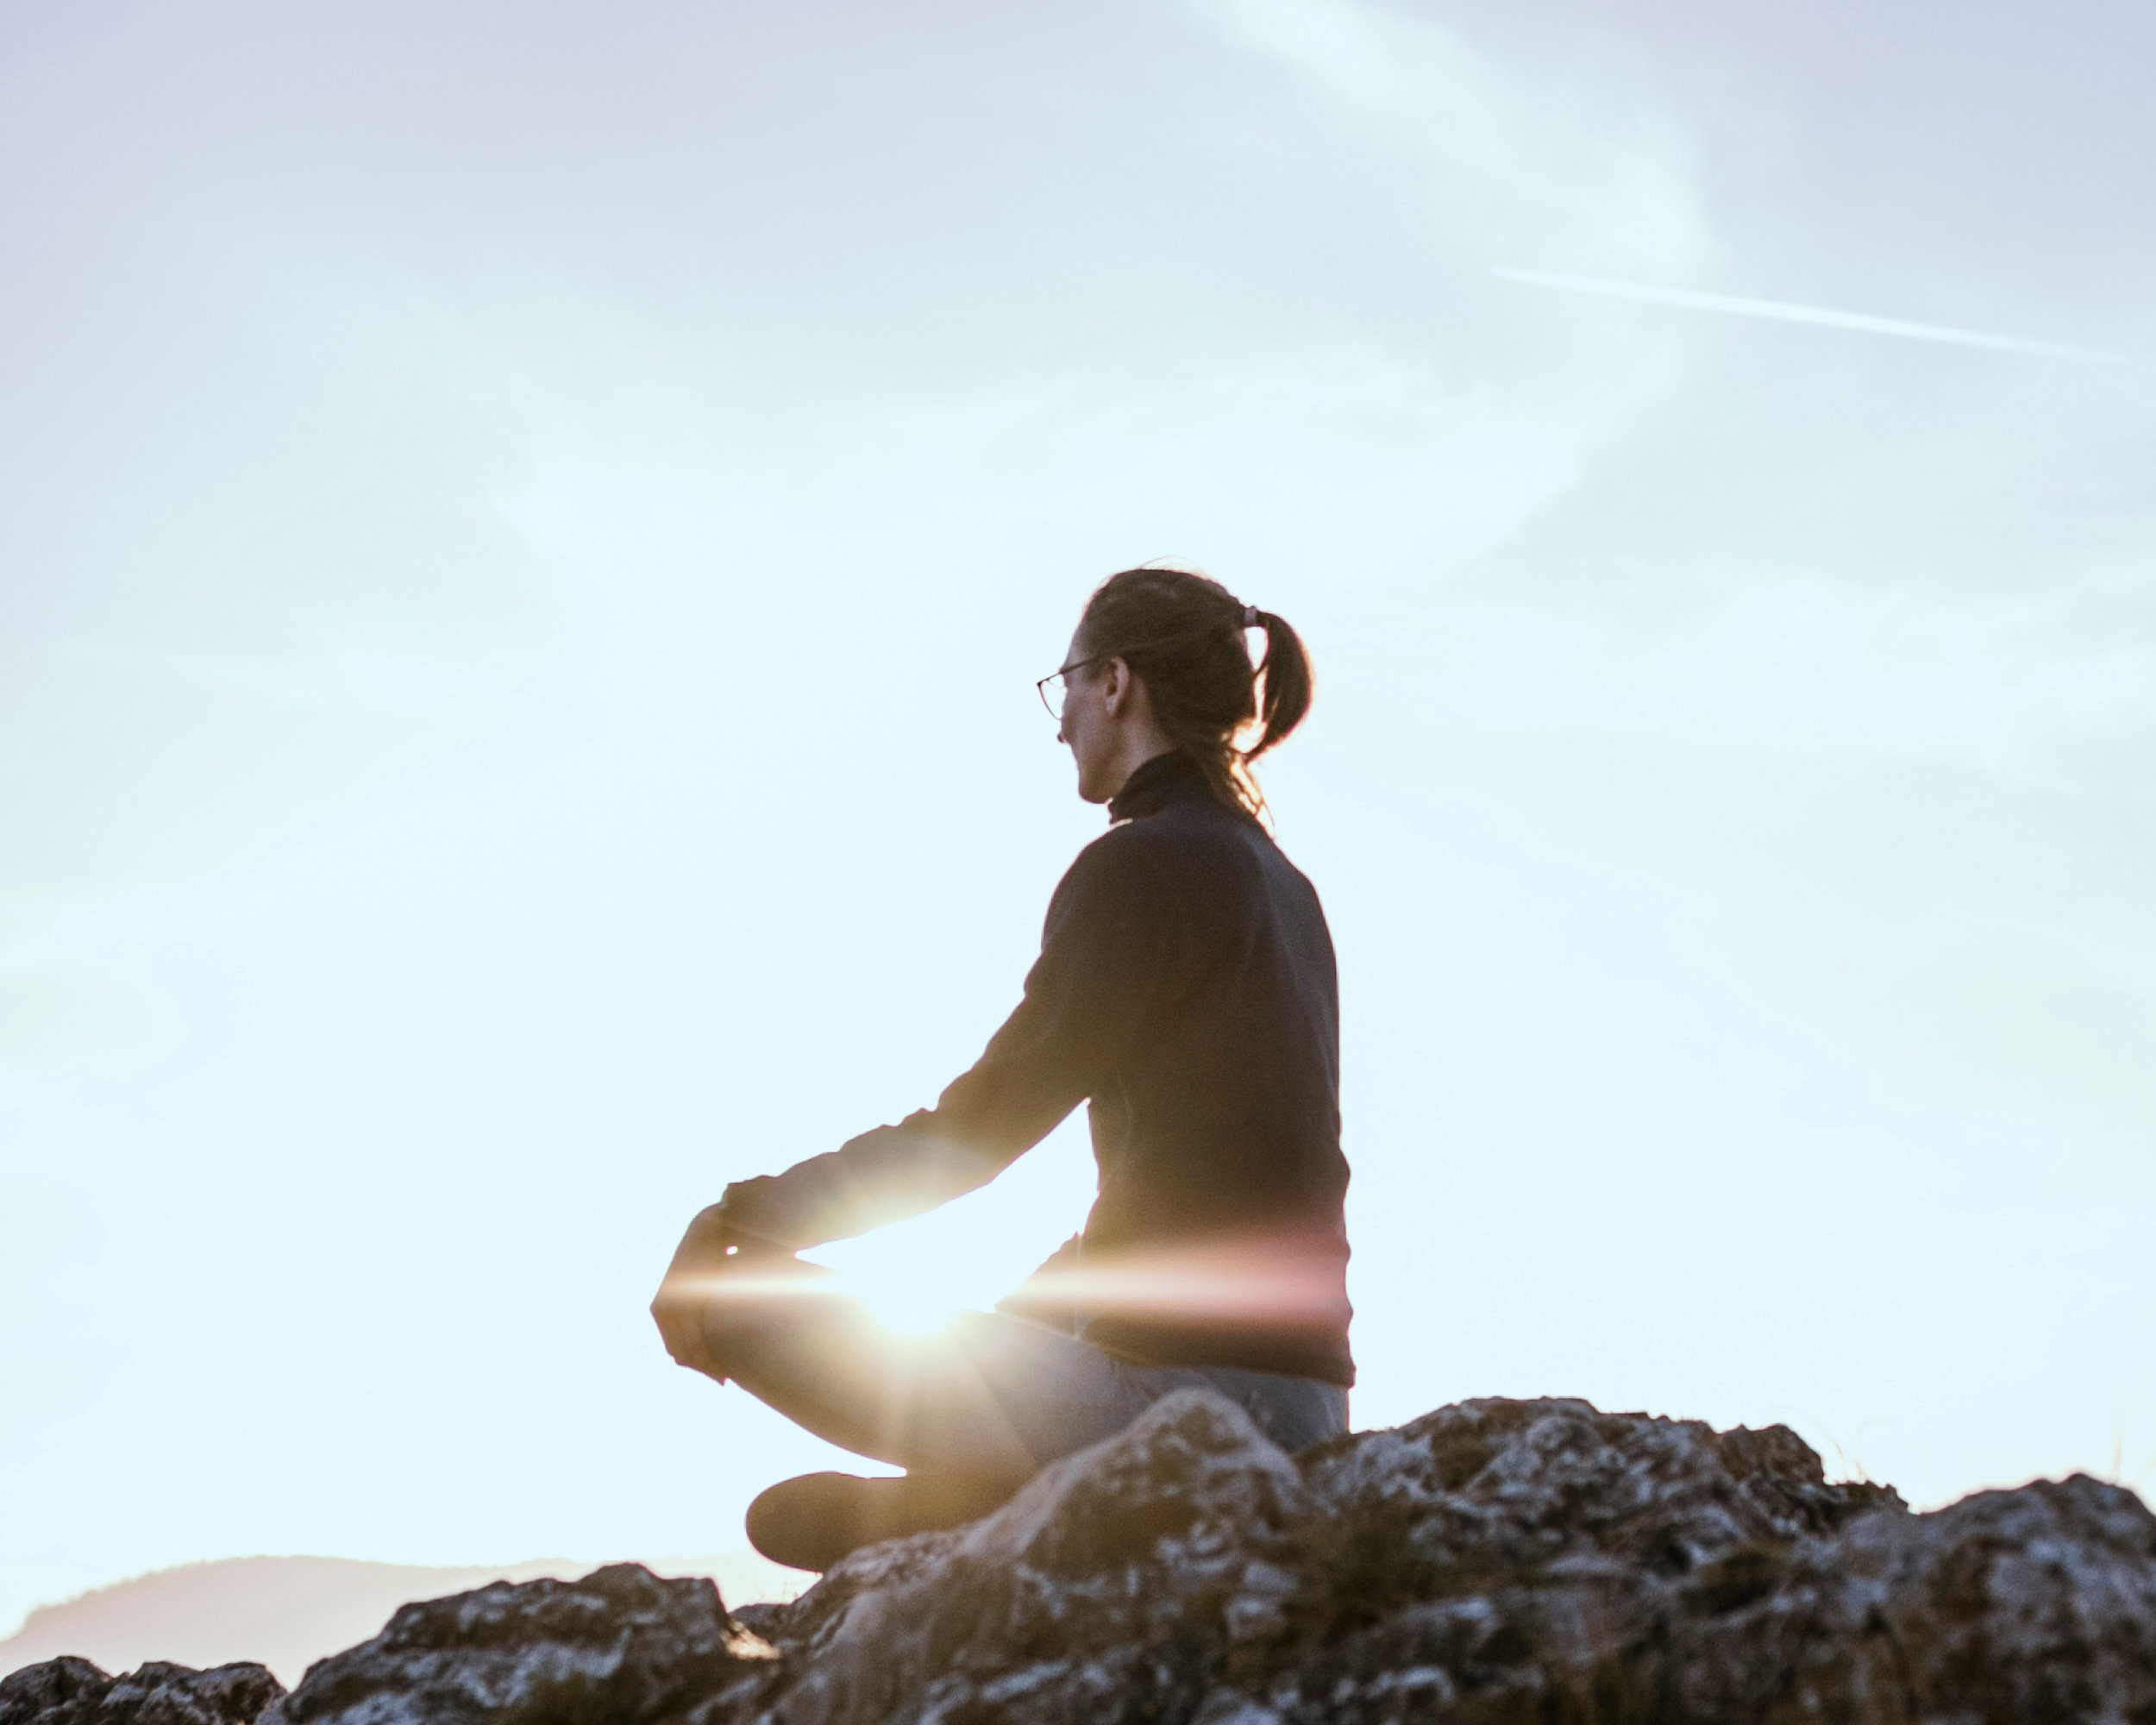 Relaxation and Stress Reduction - When your nervous system is calm, your hormonal system, immune system, digestive, and circulatory systems all calm down, too. This means more hormonal balance, less inflammation, better circulation and nutrient absorption.